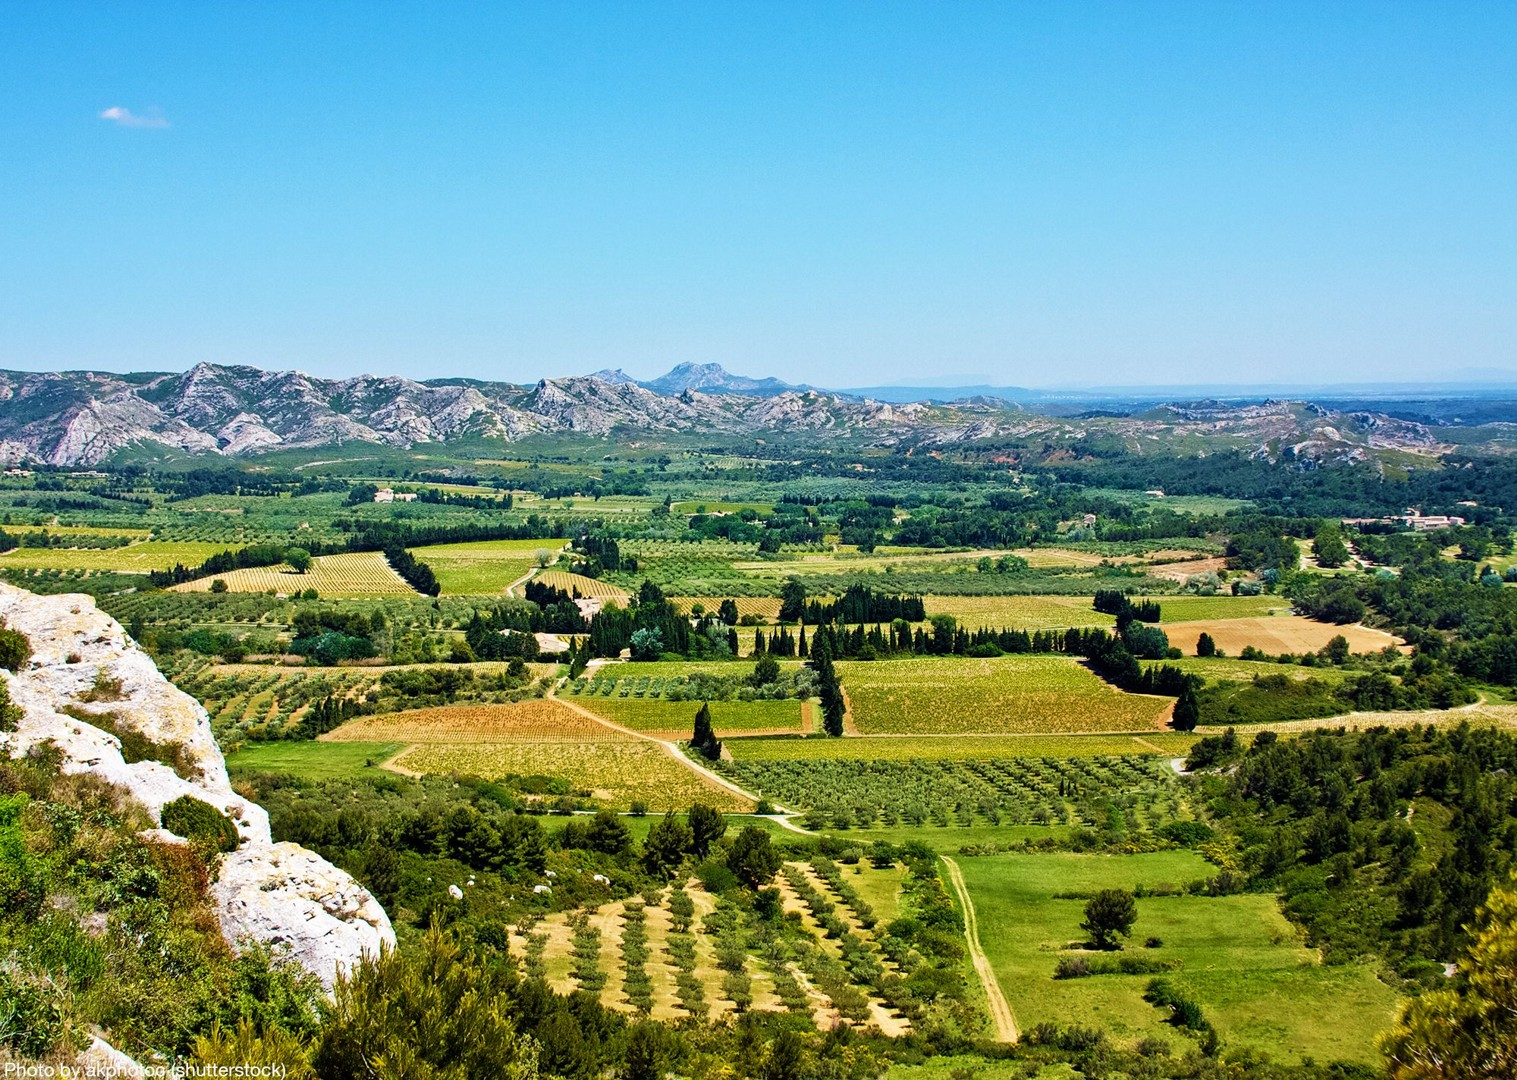 château-des-baux-de-provence-self-guided-leisure-cycling-holiday.jpg - France - Provence - Self-Guided Leisure Cycling Holiday - Leisure Cycling